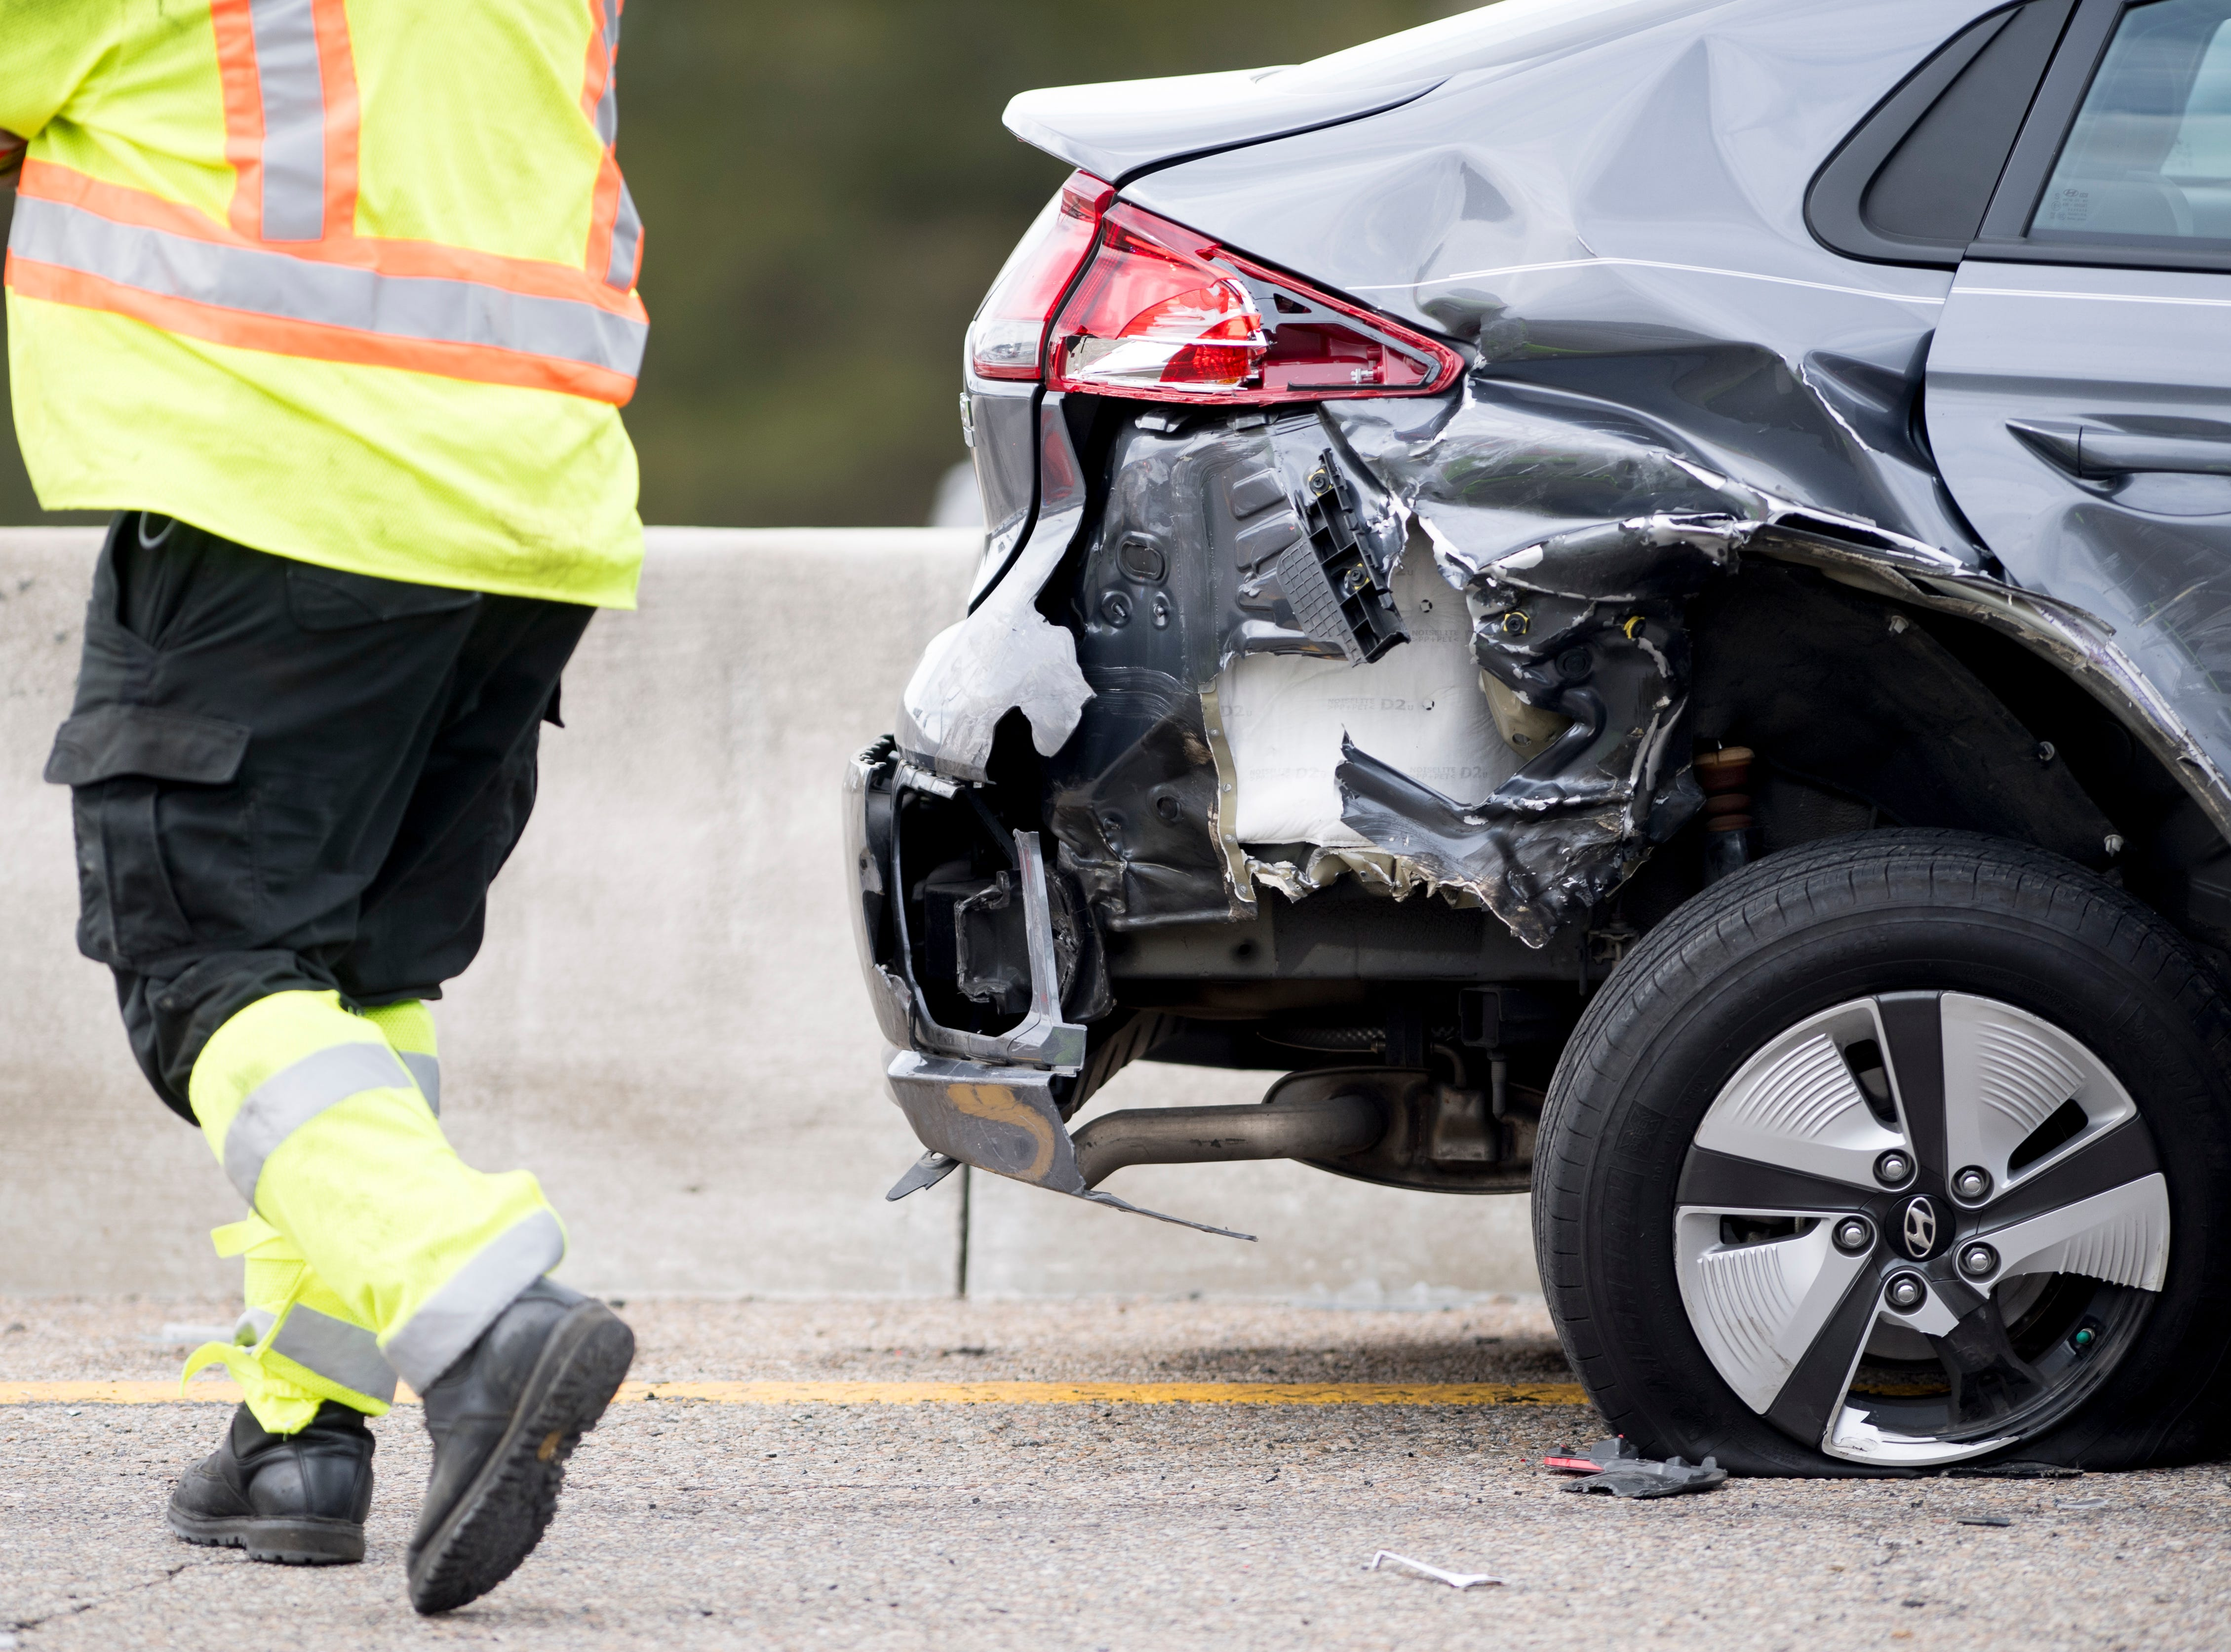 The back end of a Hyundai sedan is seen heavily damaged from a multiple vehicle pileup on I-75 northbound near the Callahan Drive exit in Knoxville, Tennessee on Thursday, March 14, 2019. The crash sent several to the hospital and backed up traffic to the I-640 interchange.